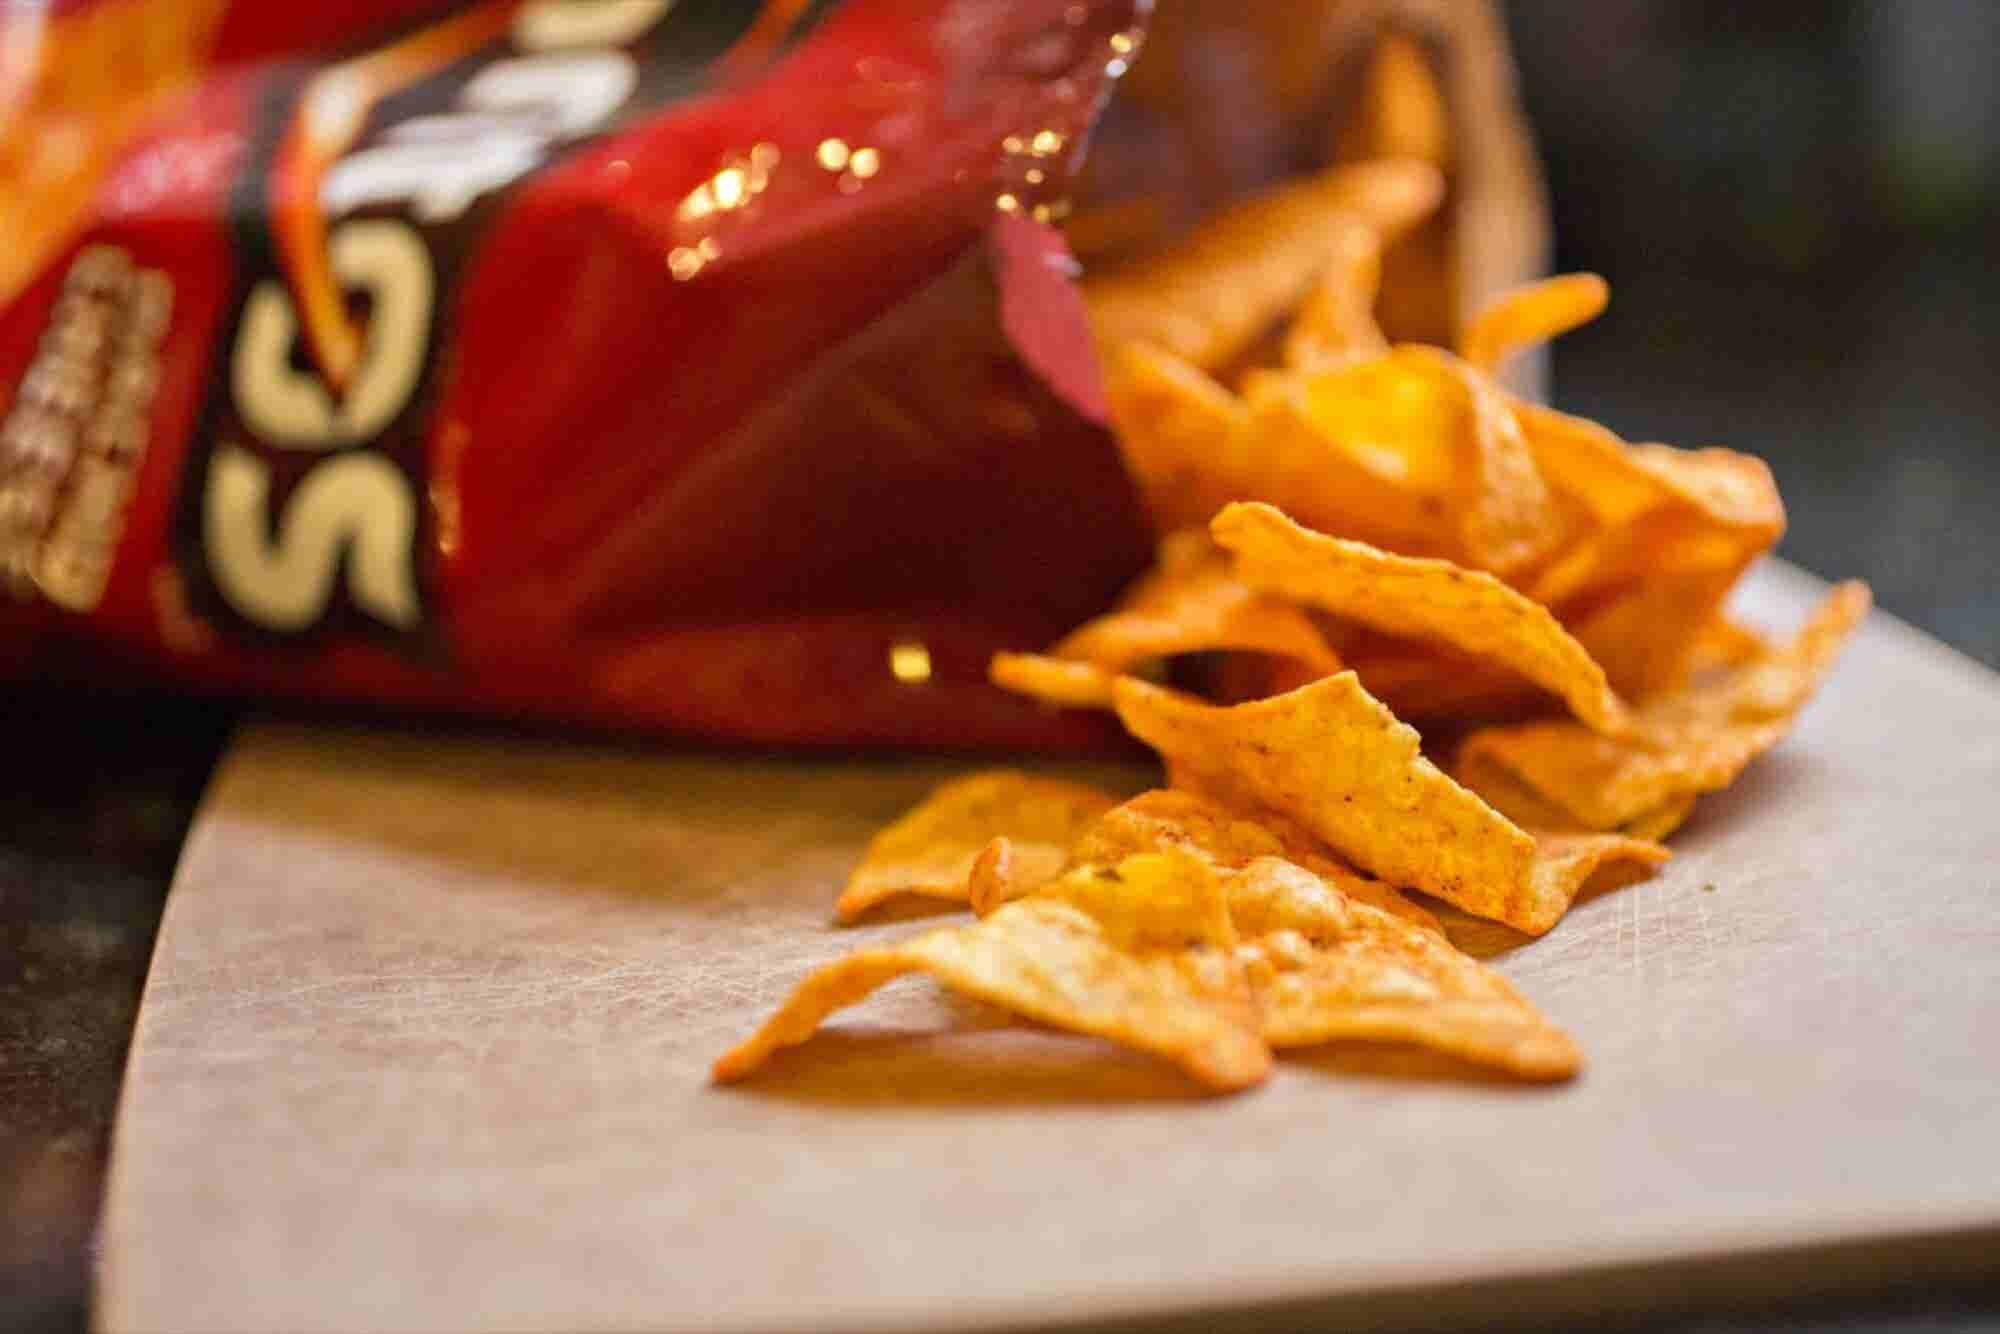 'Lady Doritos' Don't Actually Exist, But the Outrage Against It Teaches Us an Important Lesson About Making Up Our Own Minds